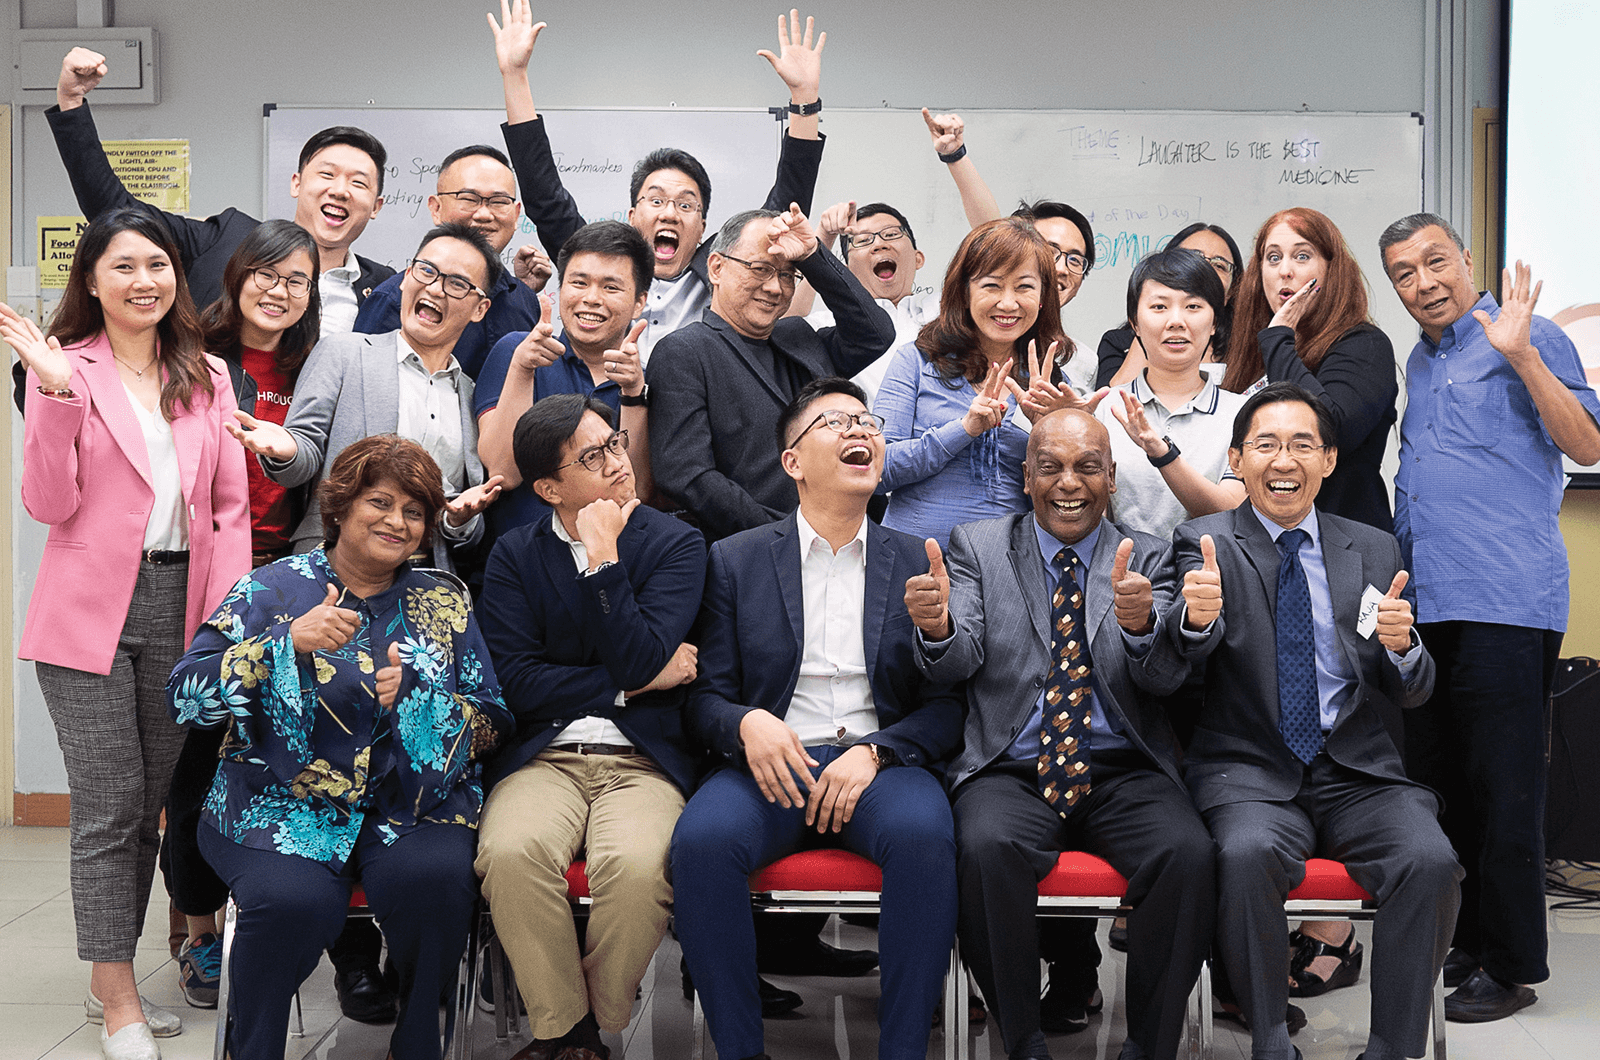 Group of Toastmasters with their hands in the air